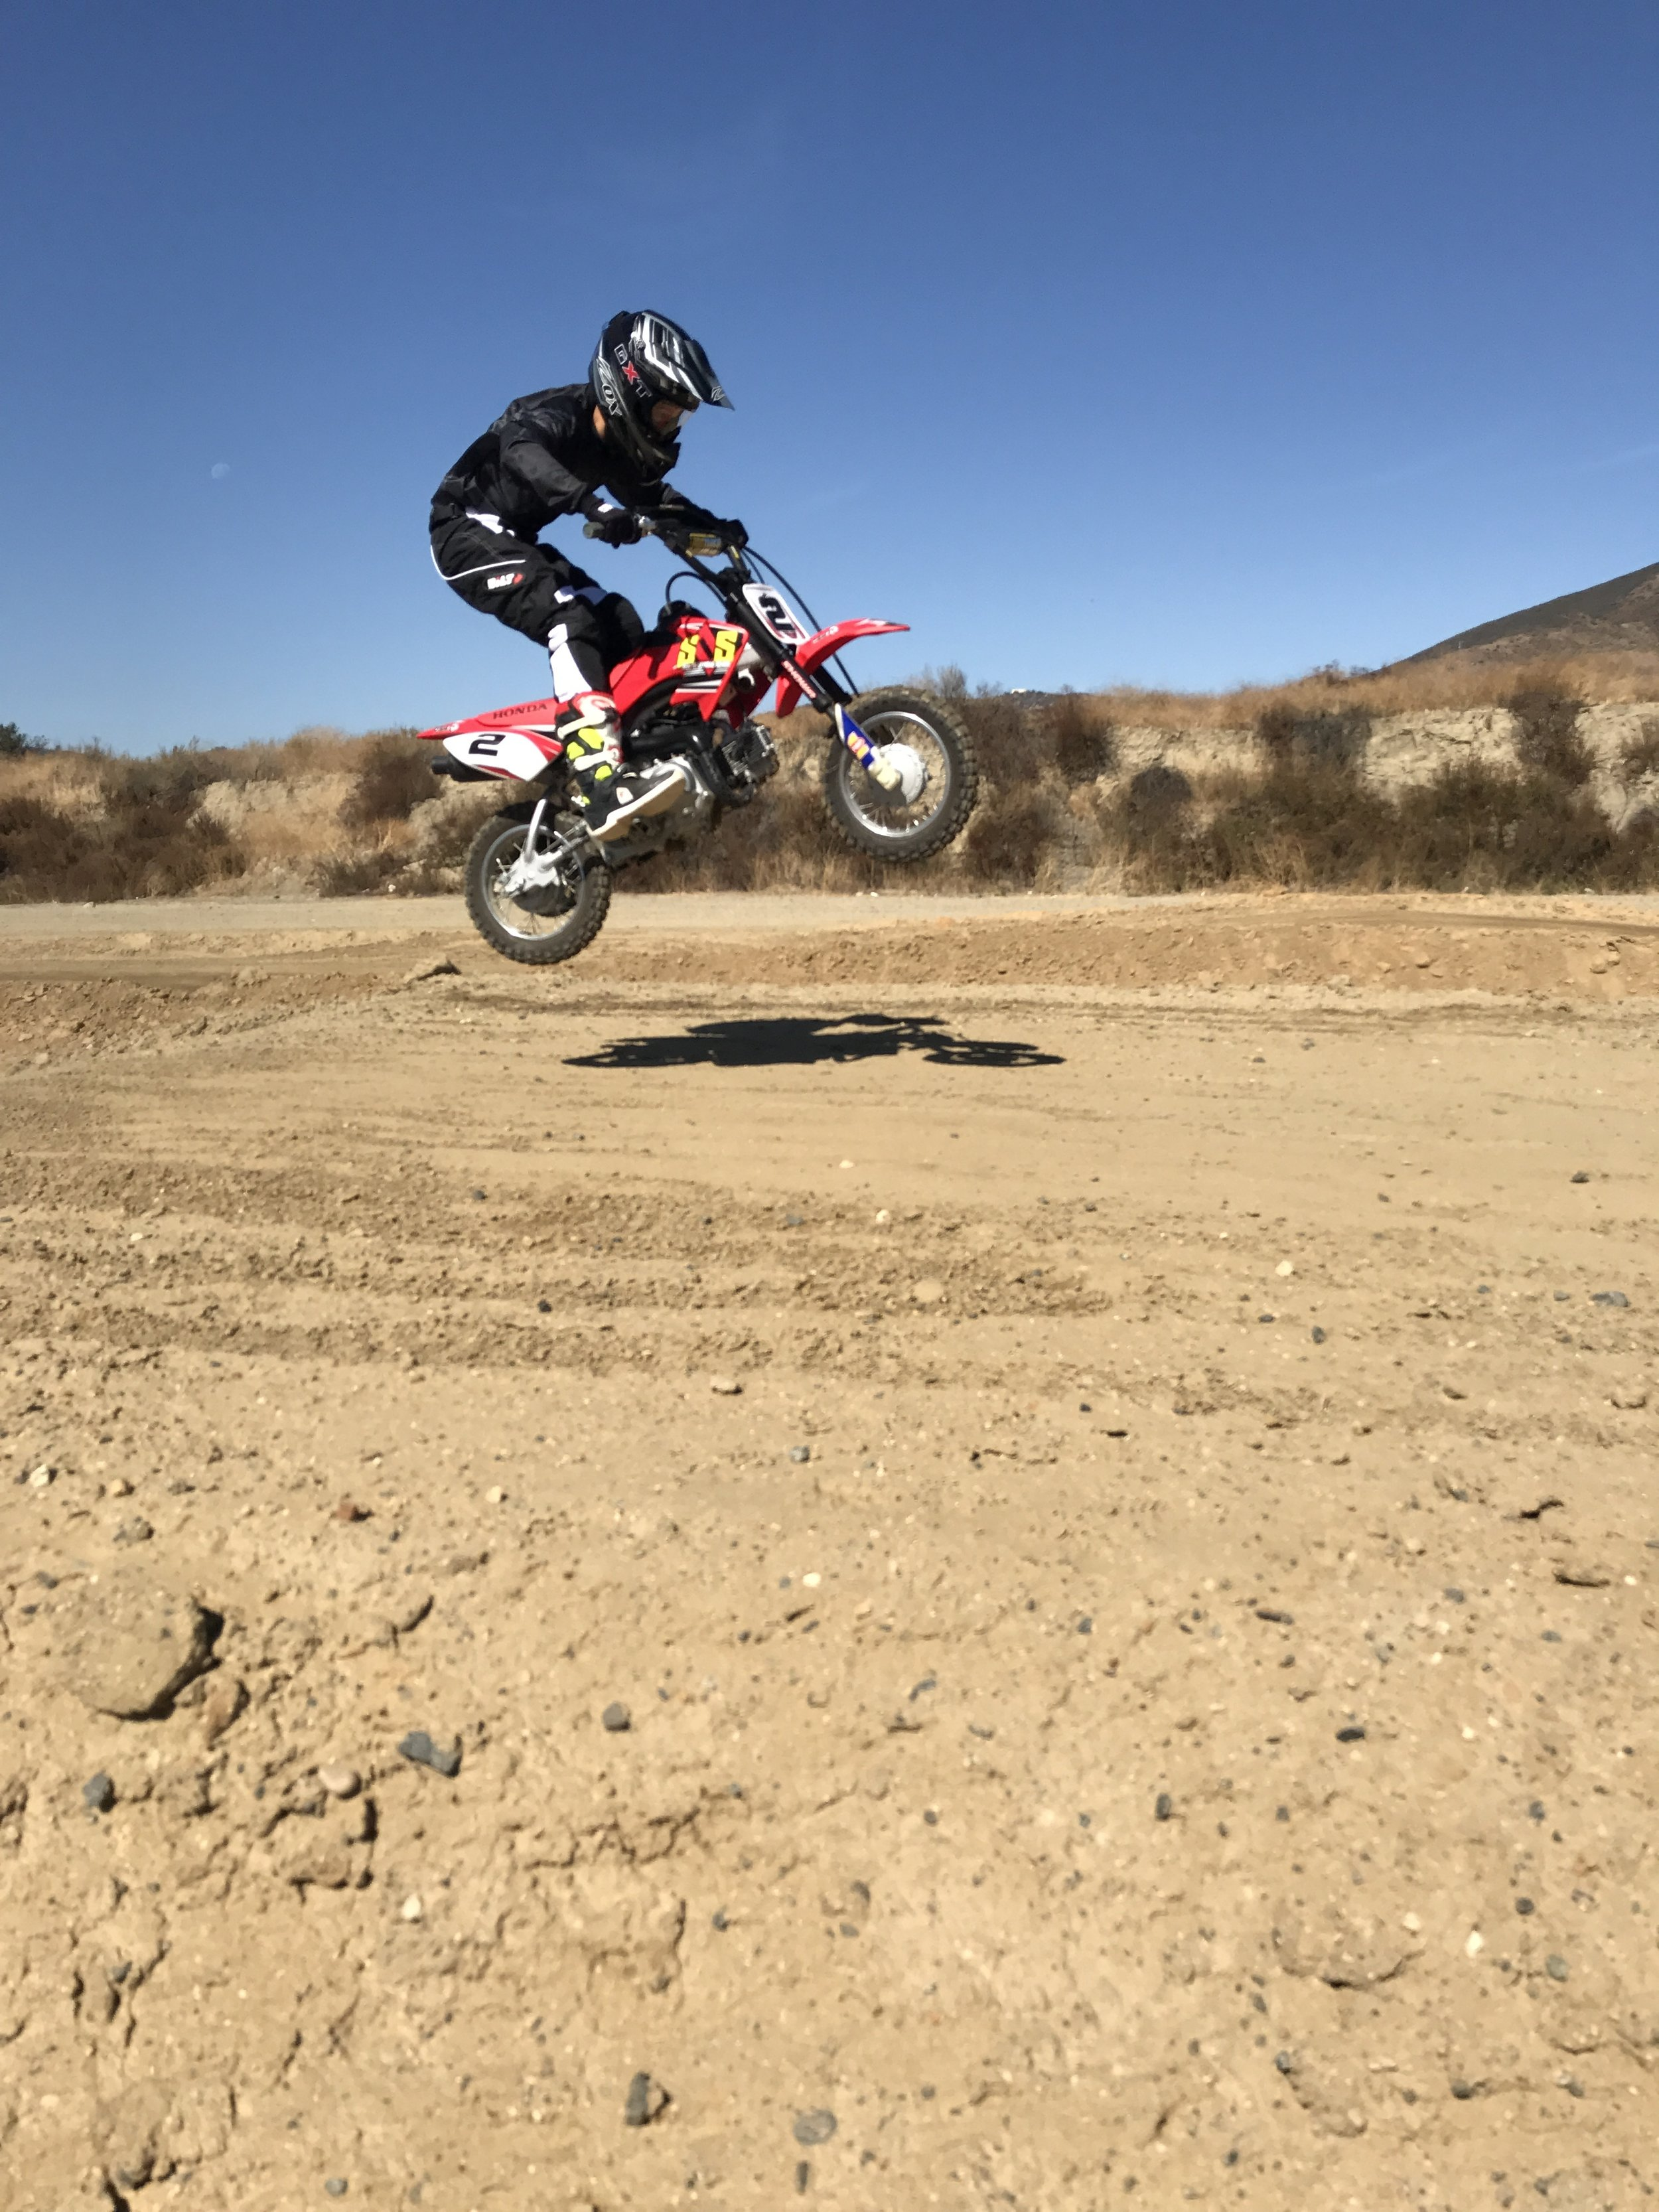 Beginner dirt bike lessons for kids and adults